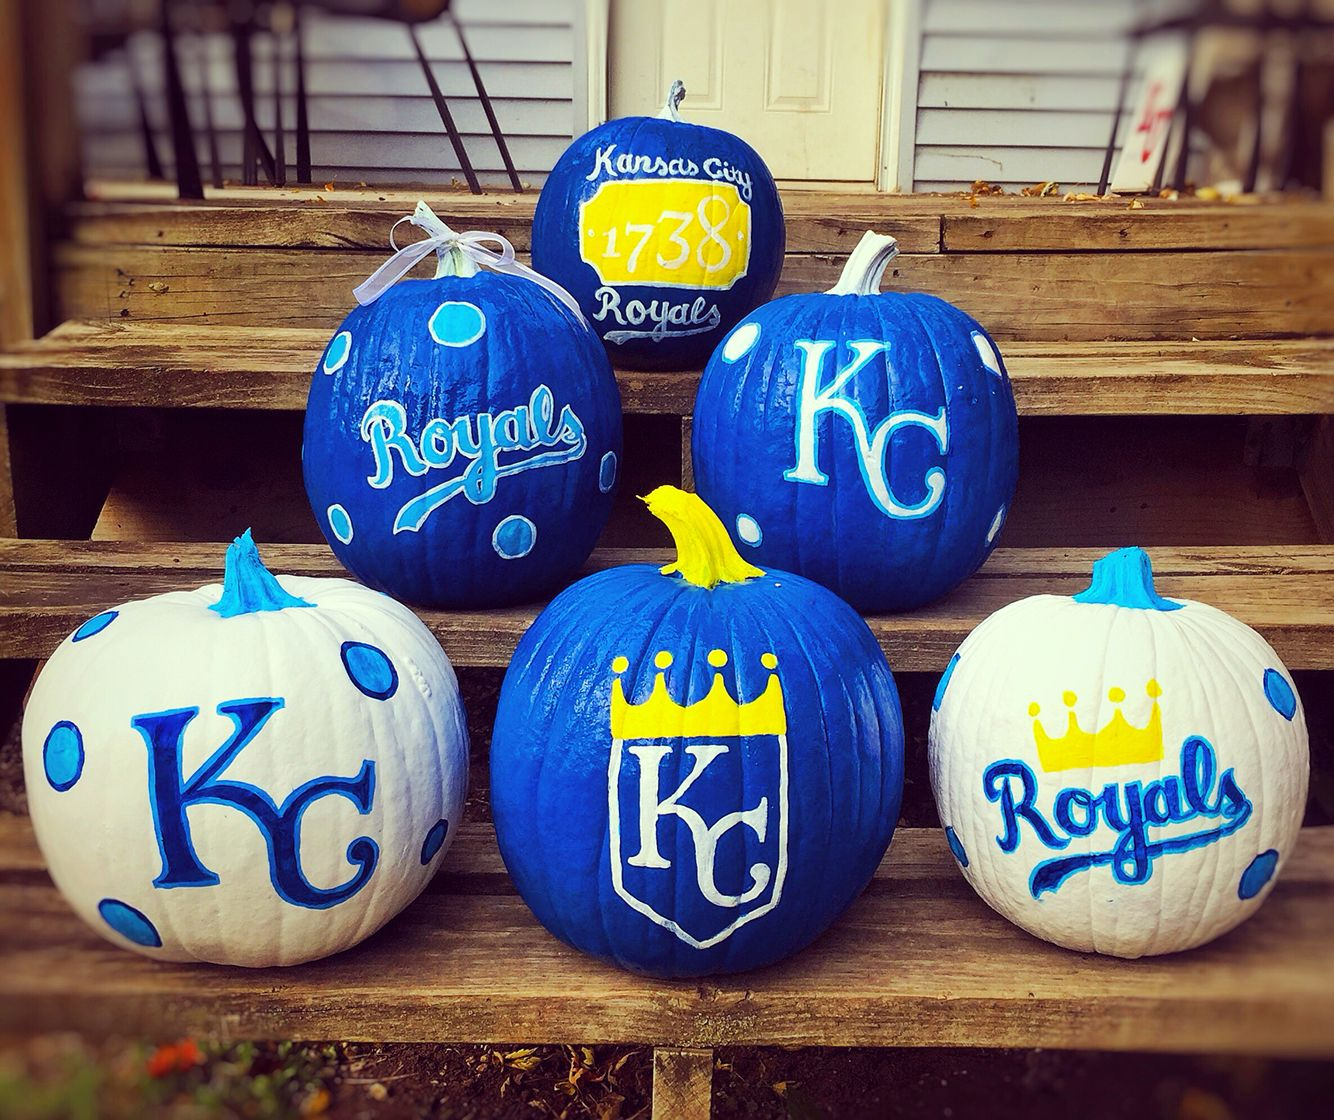 It's a Blue October in KC! Kansas City Royals pumpkins! #royals #webelieve #royals